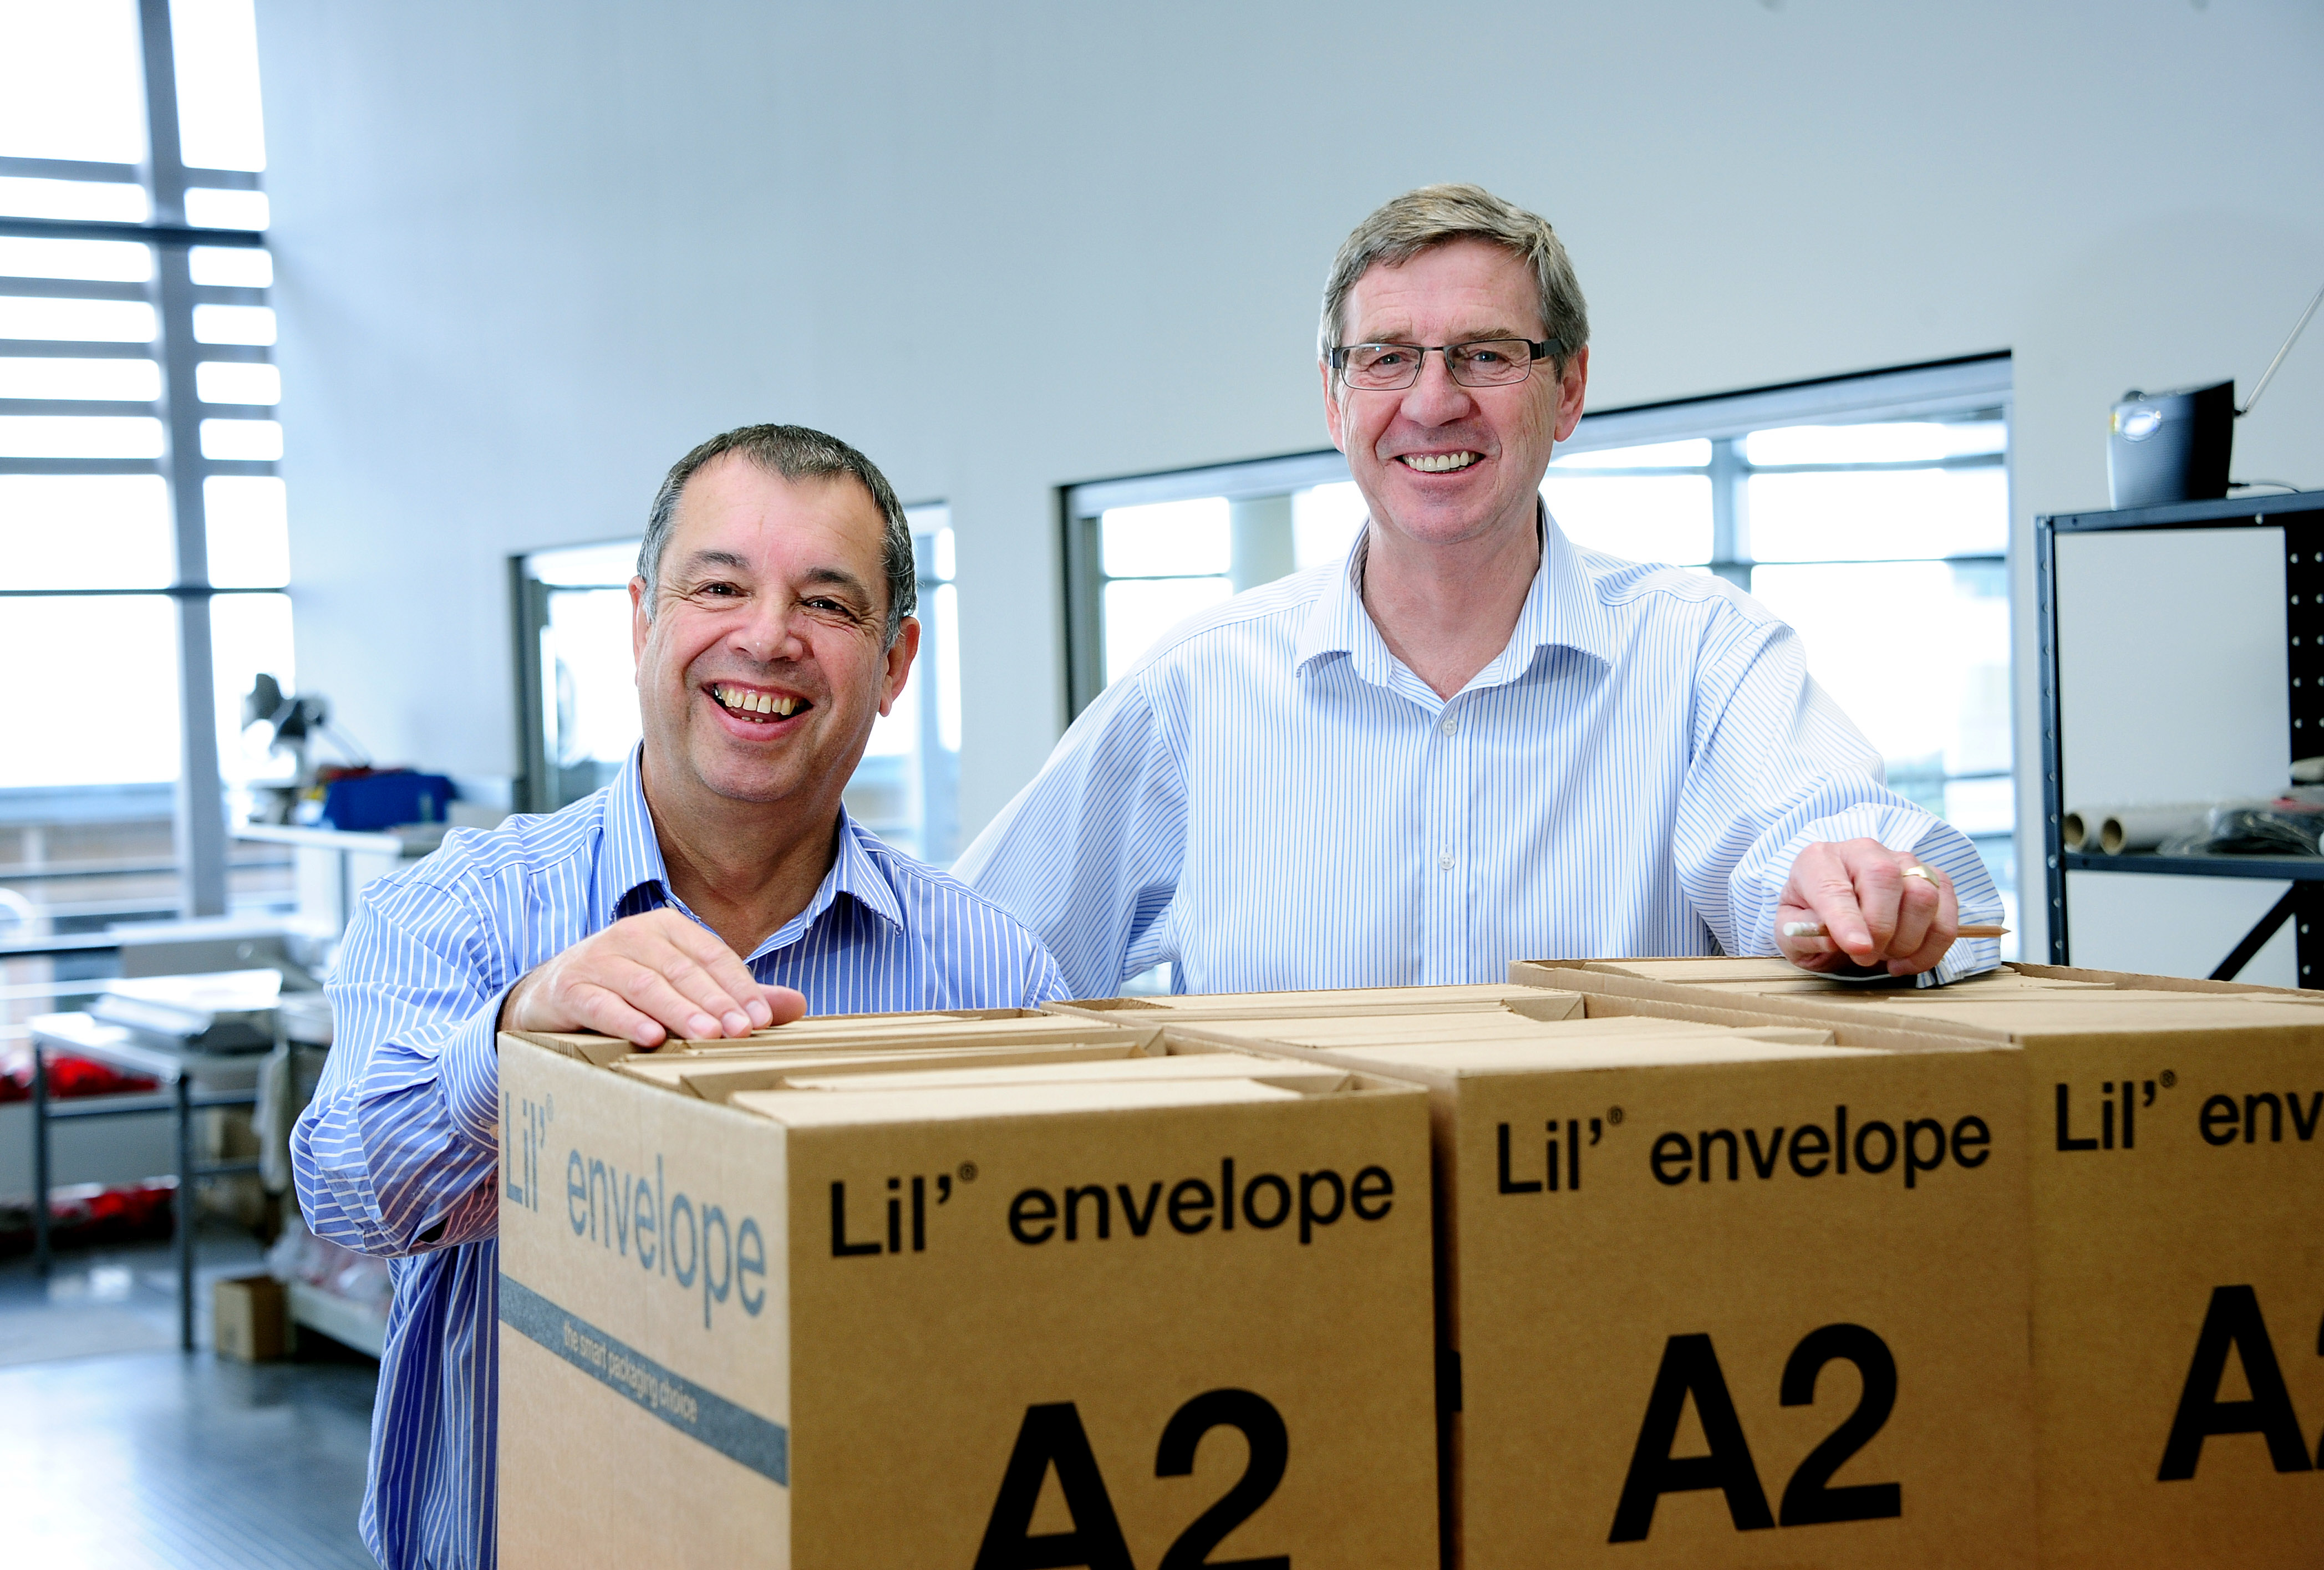 Nick Keat (left) from St Austell Mailing with Peter Moody from St Austell Printing Company